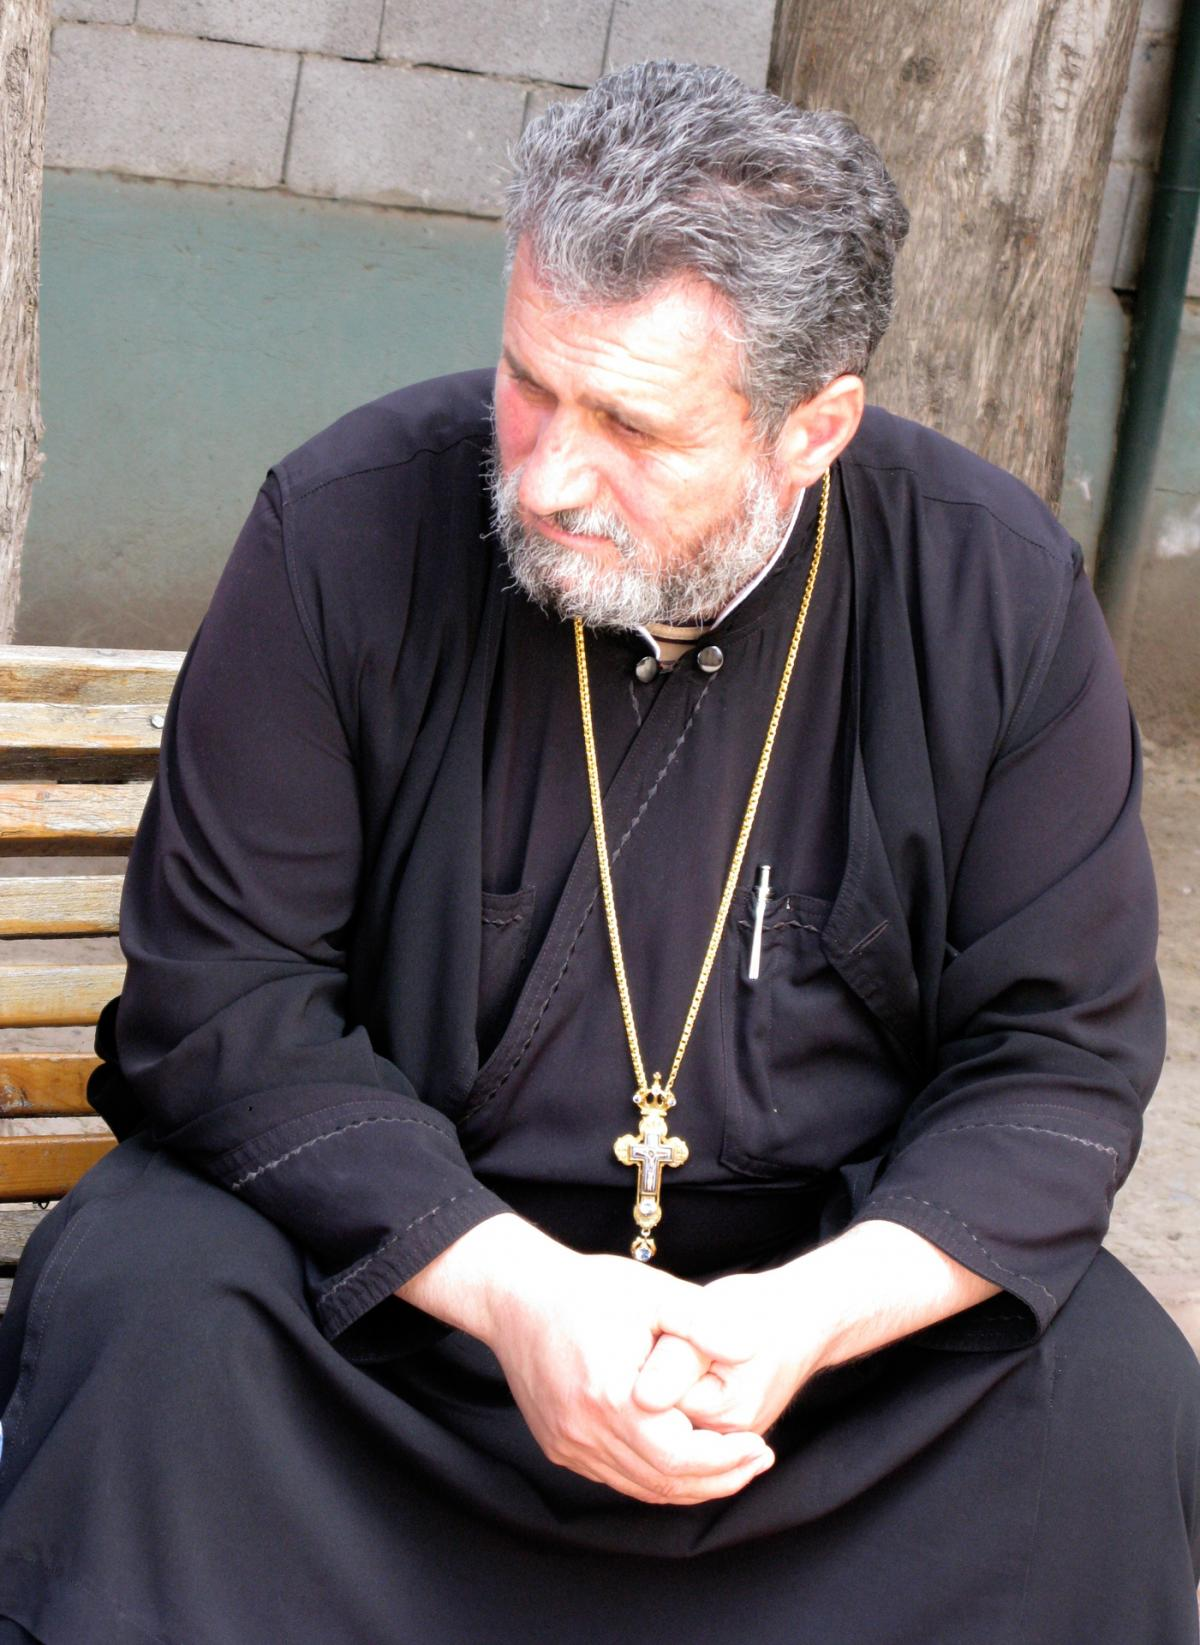 """The Rev. Mikael Botkovali of the Georgian Orthodox Church says homosexuals """"will go to hell,"""" but he condemns the priests who led a mob against LGBT demonstrators in Tblisi."""